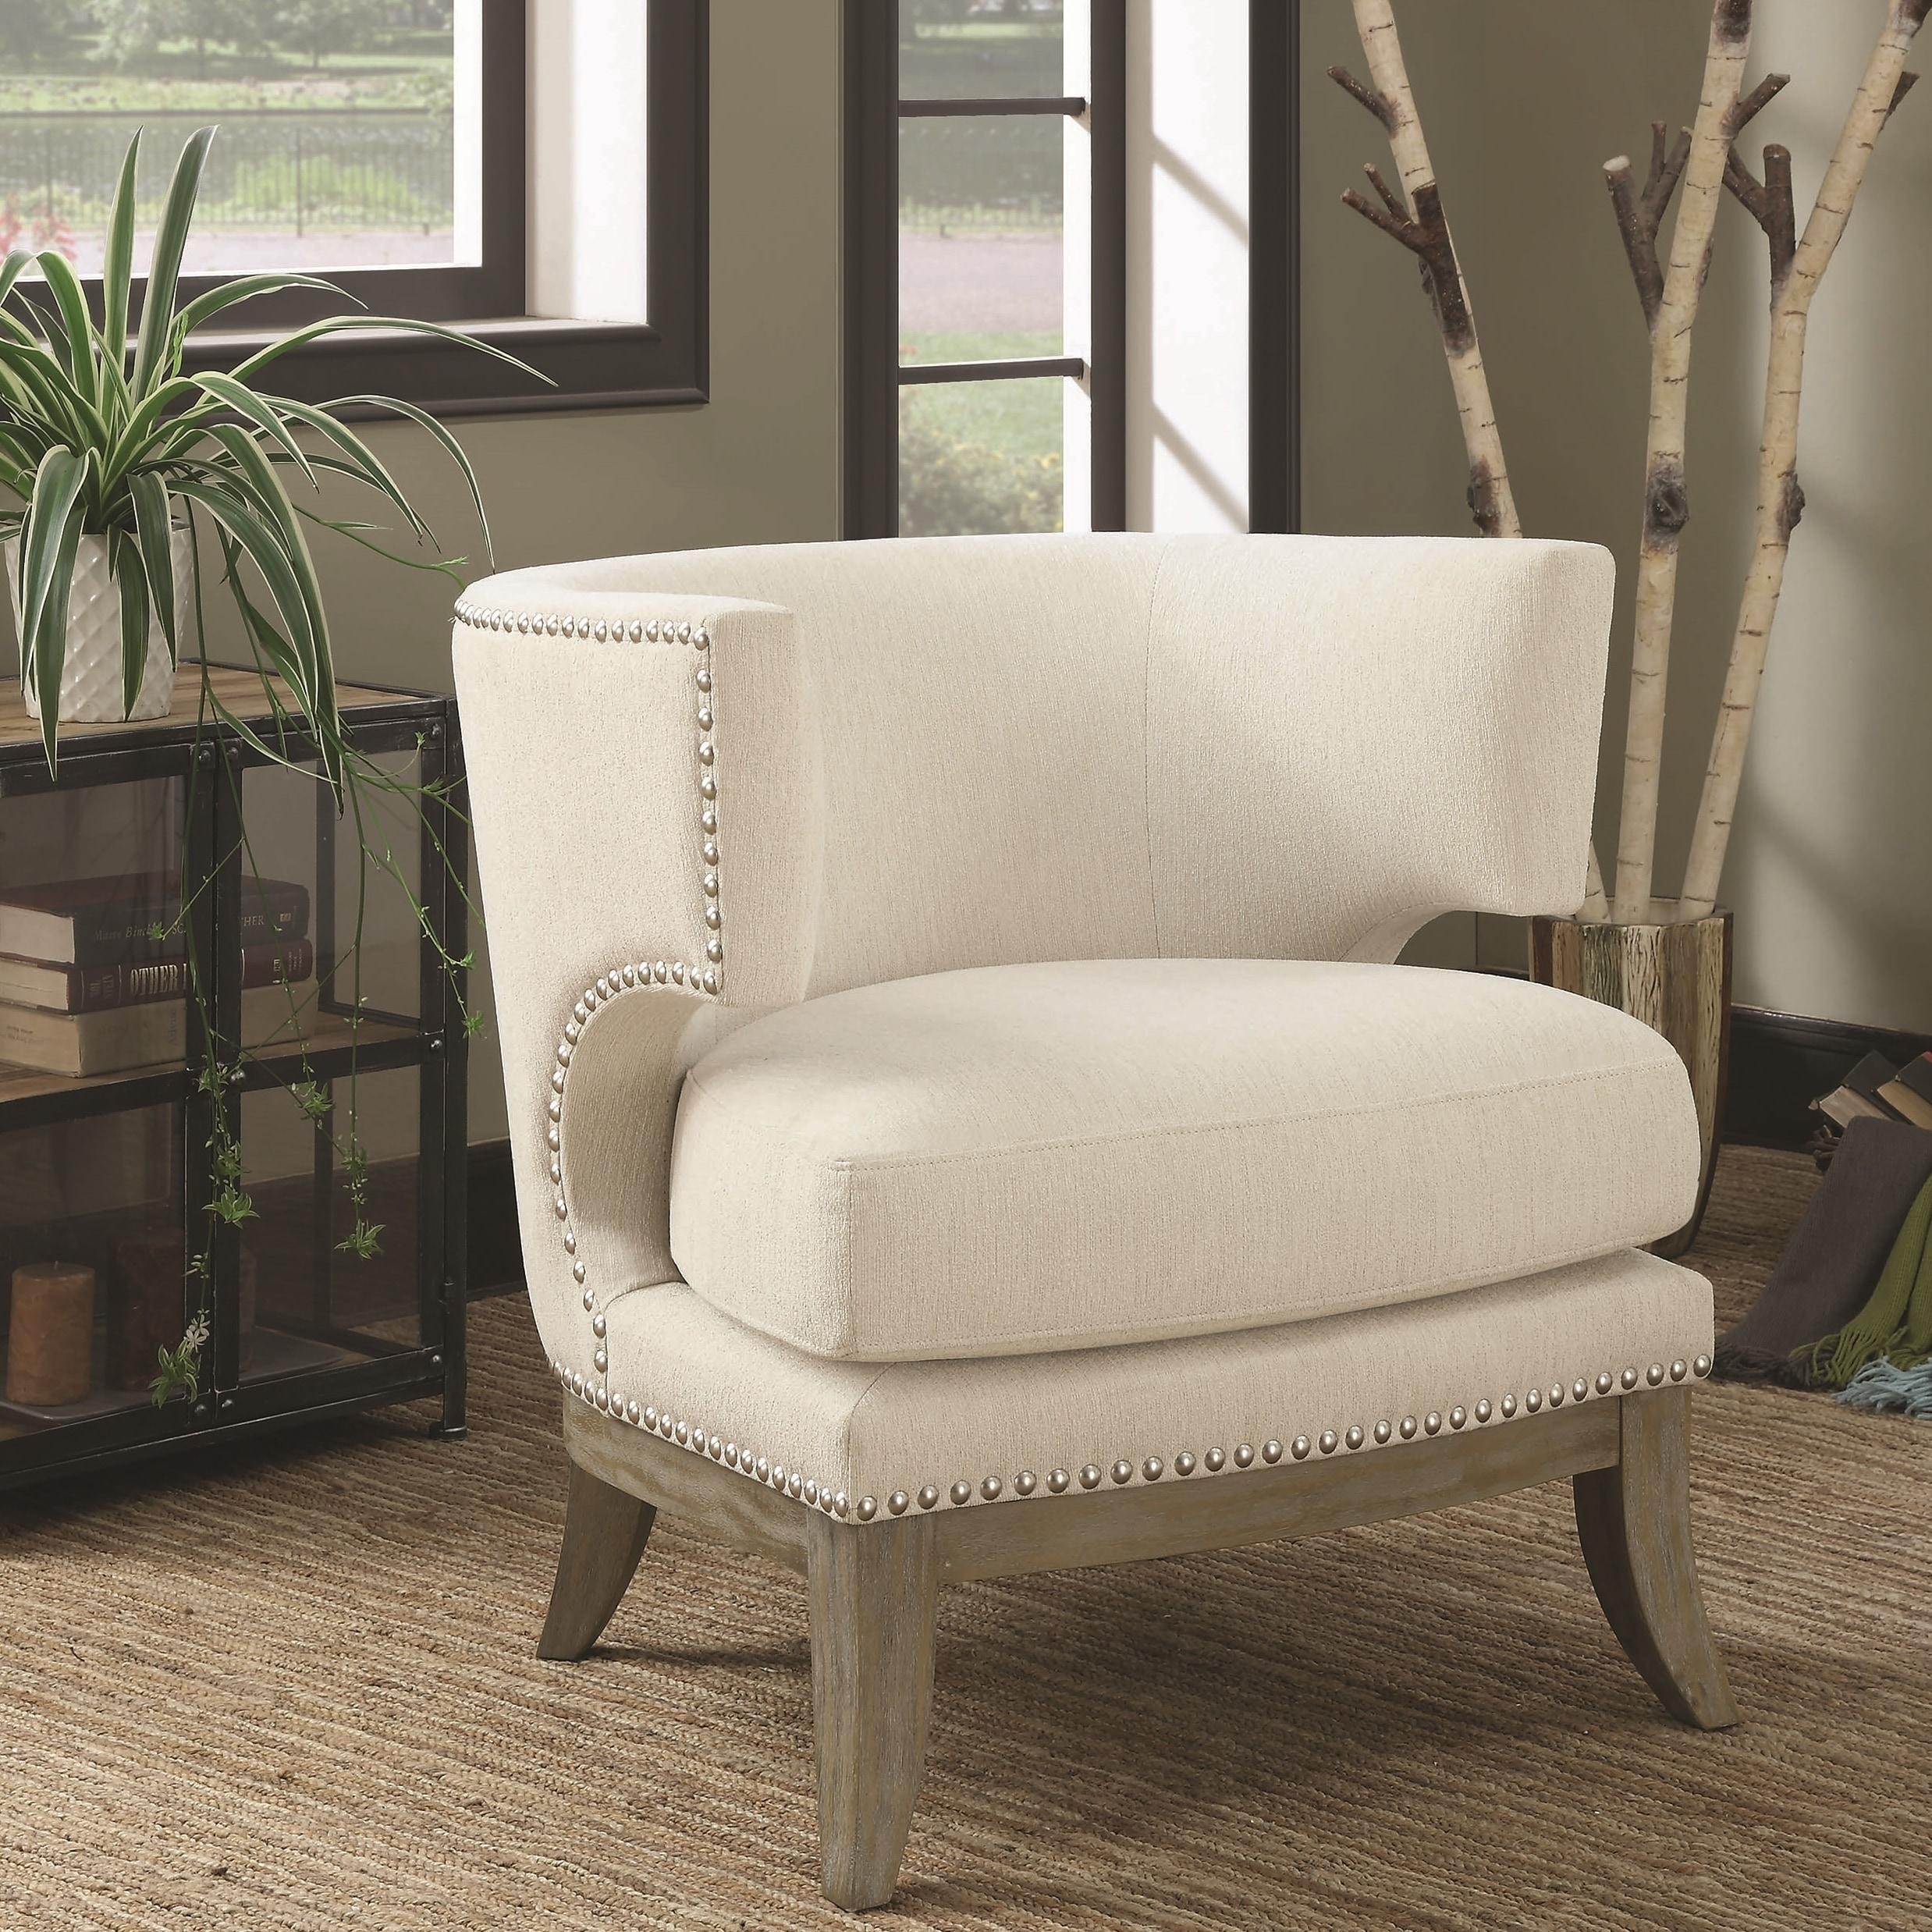 Mid Century Design Cream White Chenille Living Room Accent Chair With Nailhead Trim On Sale Overstock 28426052